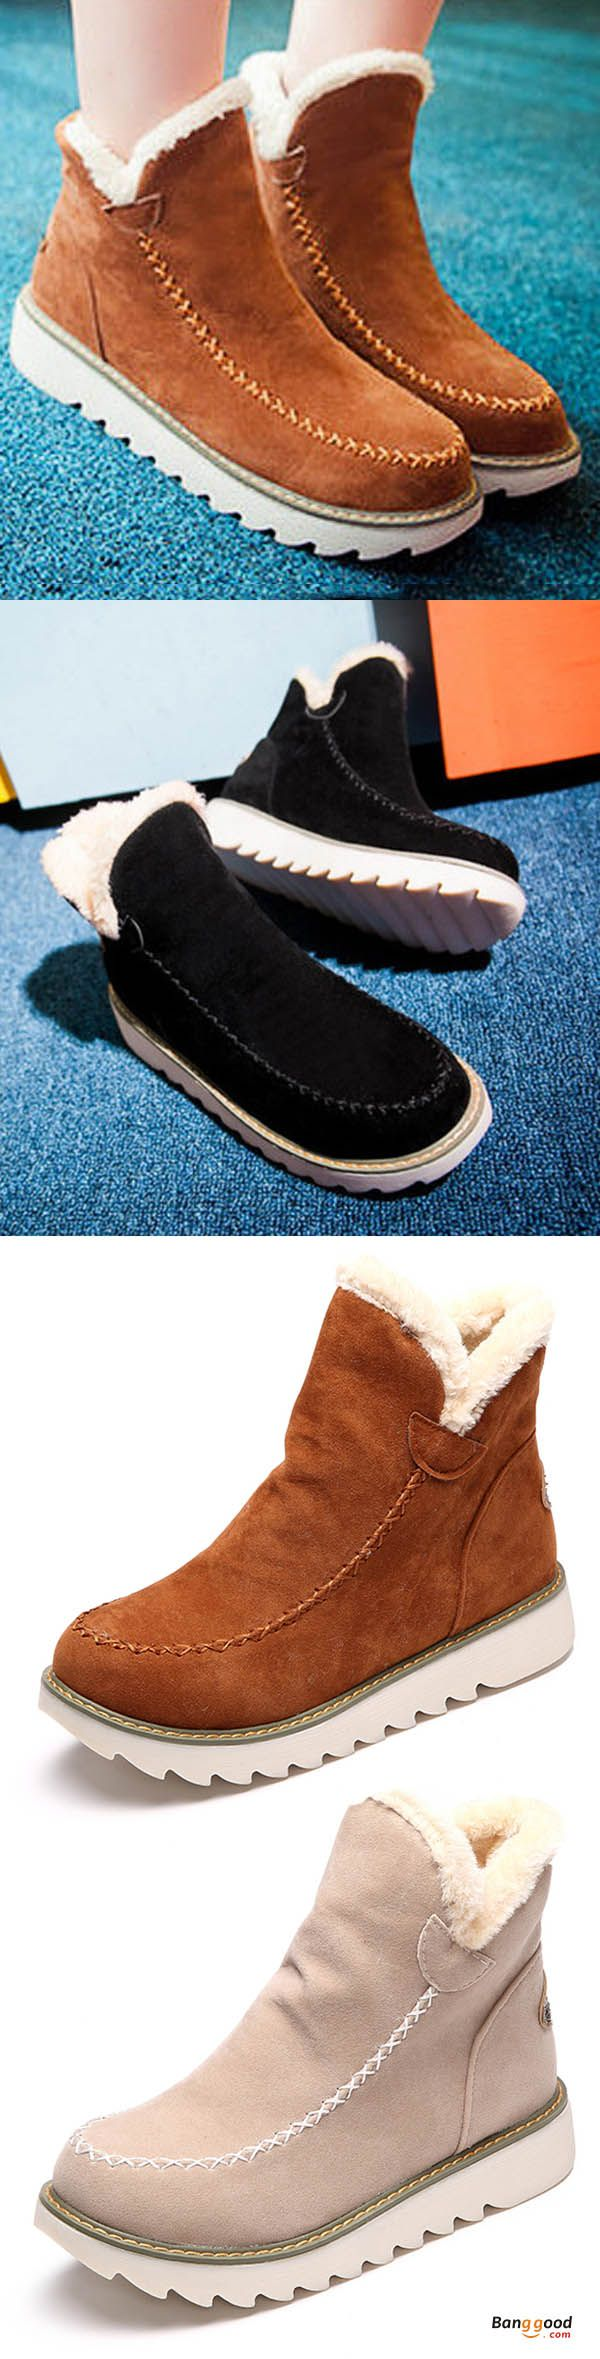 US$38.89 + Free shipping. Big Size Pure Color Warm Fur Lining Winter Ankle Snow Boots For Women. Women's shoes boots, fall winter fashion style, street looks outfits for women. Fall in love with the coming days!